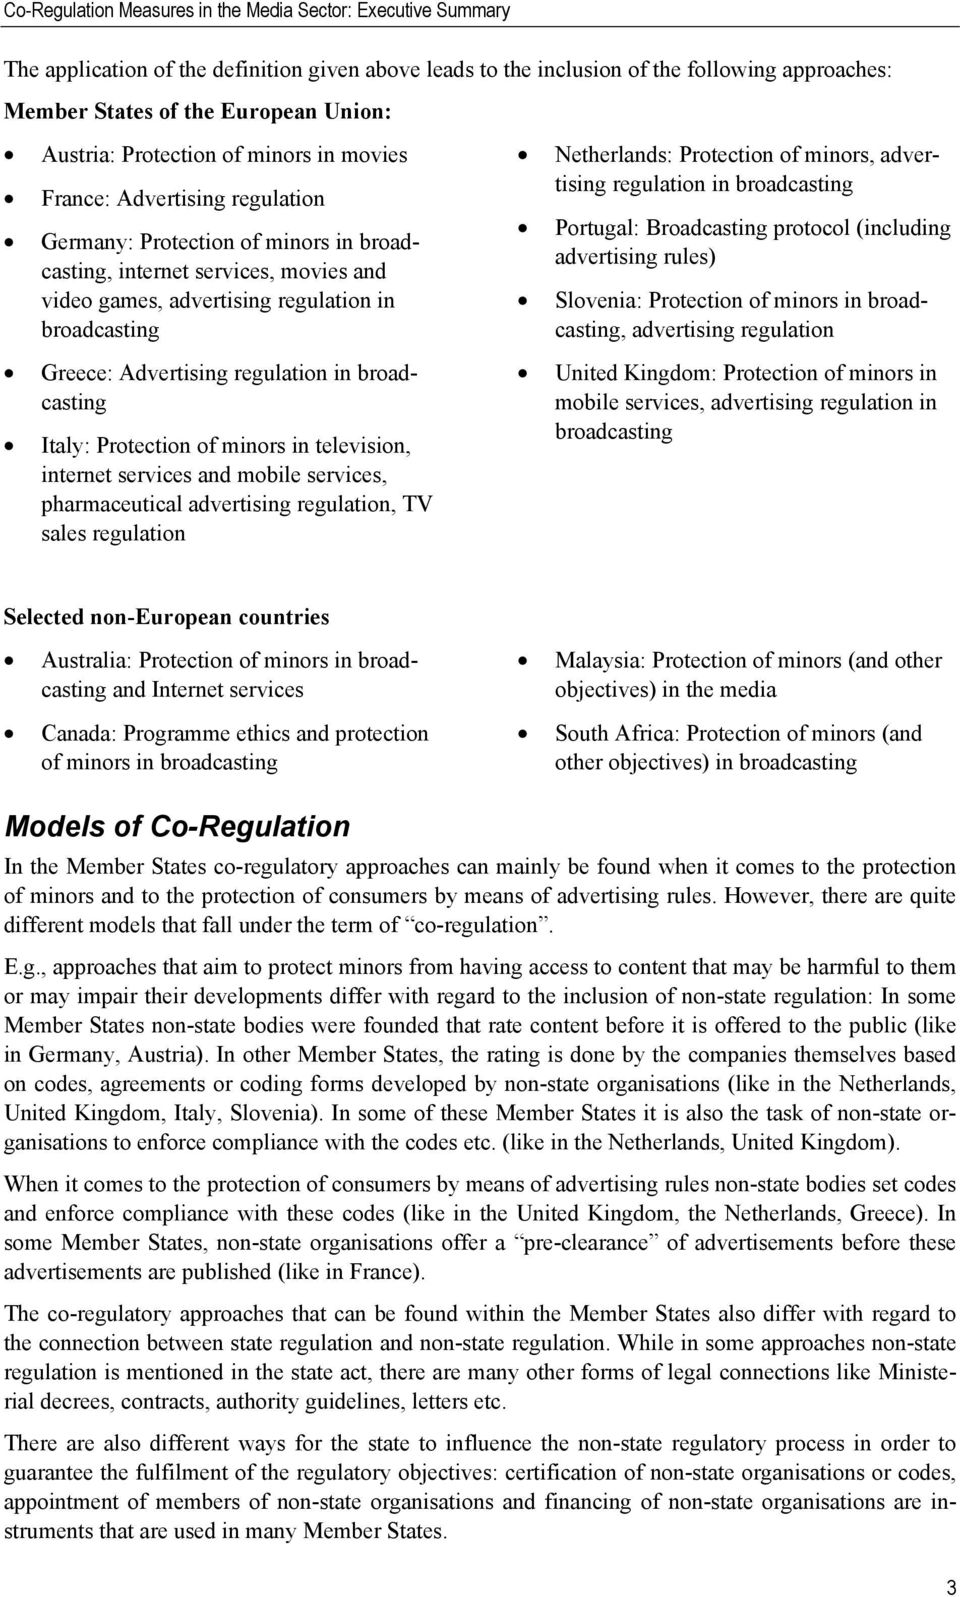 Protection of minors in television, internet services and mobile services, pharmaceutical advertising regulation, TV sales regulation Netherlands: Protection of minors, advertising regulation in